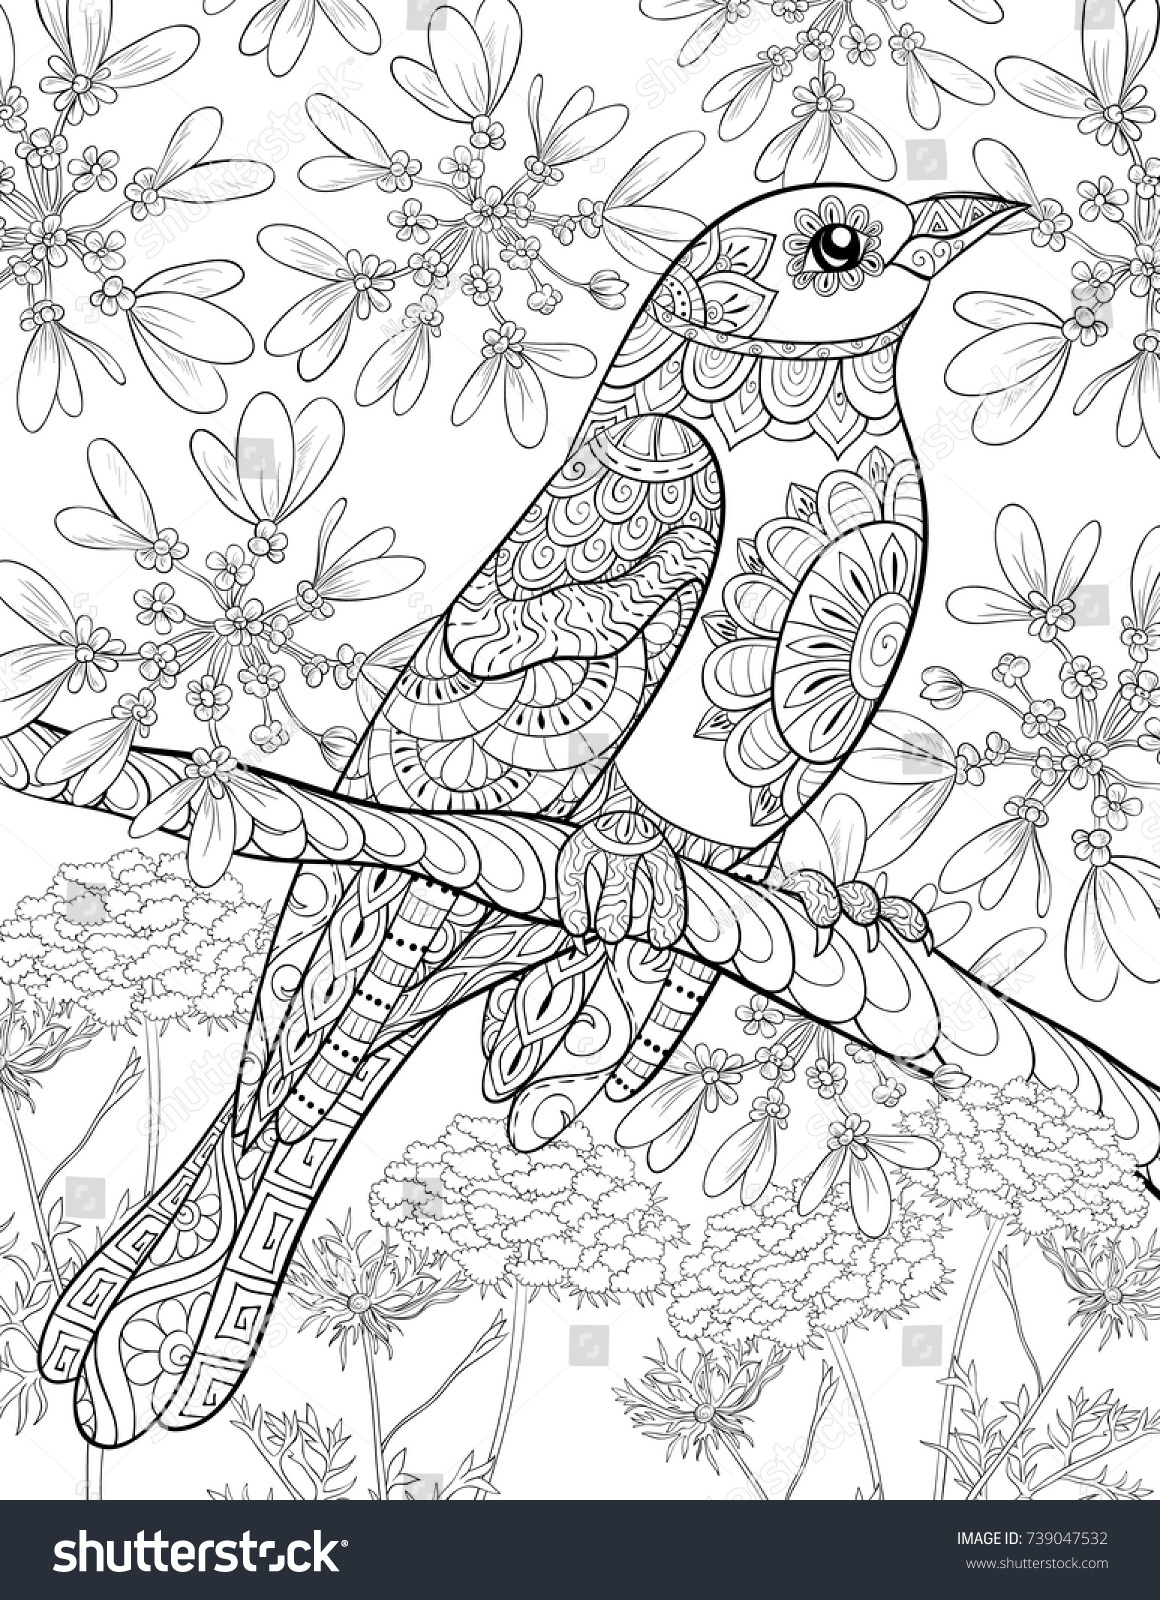 Adult coloring pagebook a cute bird on a brunch with a background zen